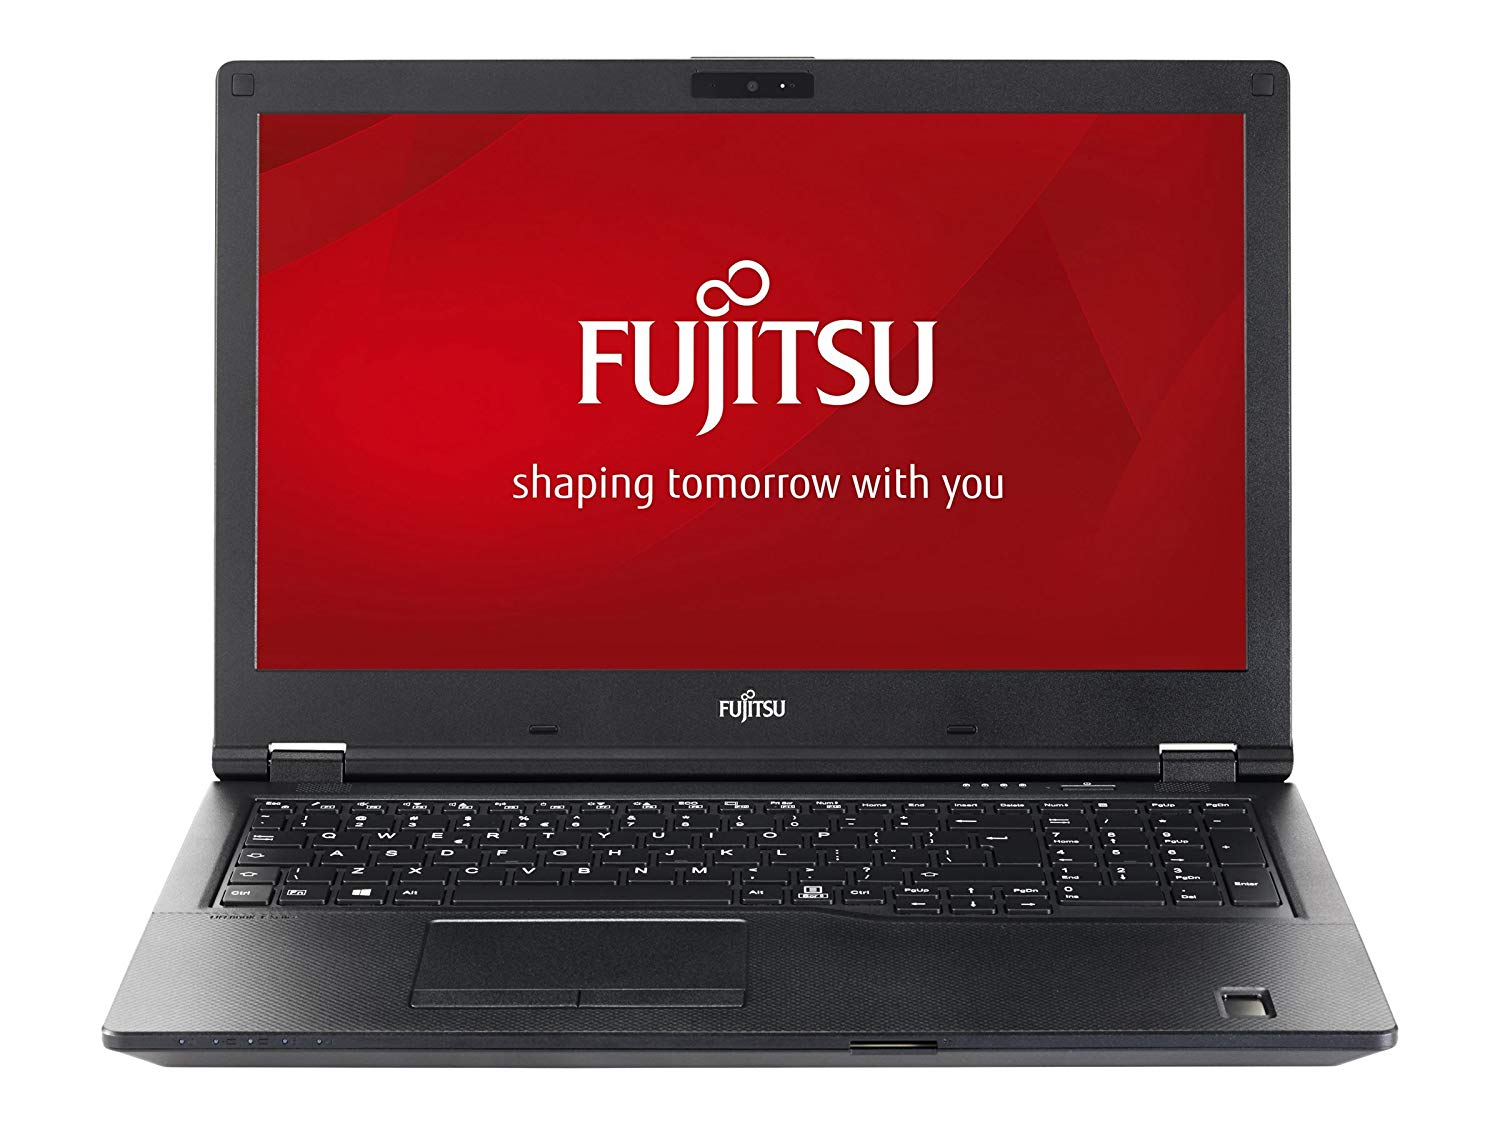 Notebook Fujitsu LifeBook E448 14 Full HD Intel Core i7-7500U RAM 8GB SSD 512GB Windows 10 Pro Negru